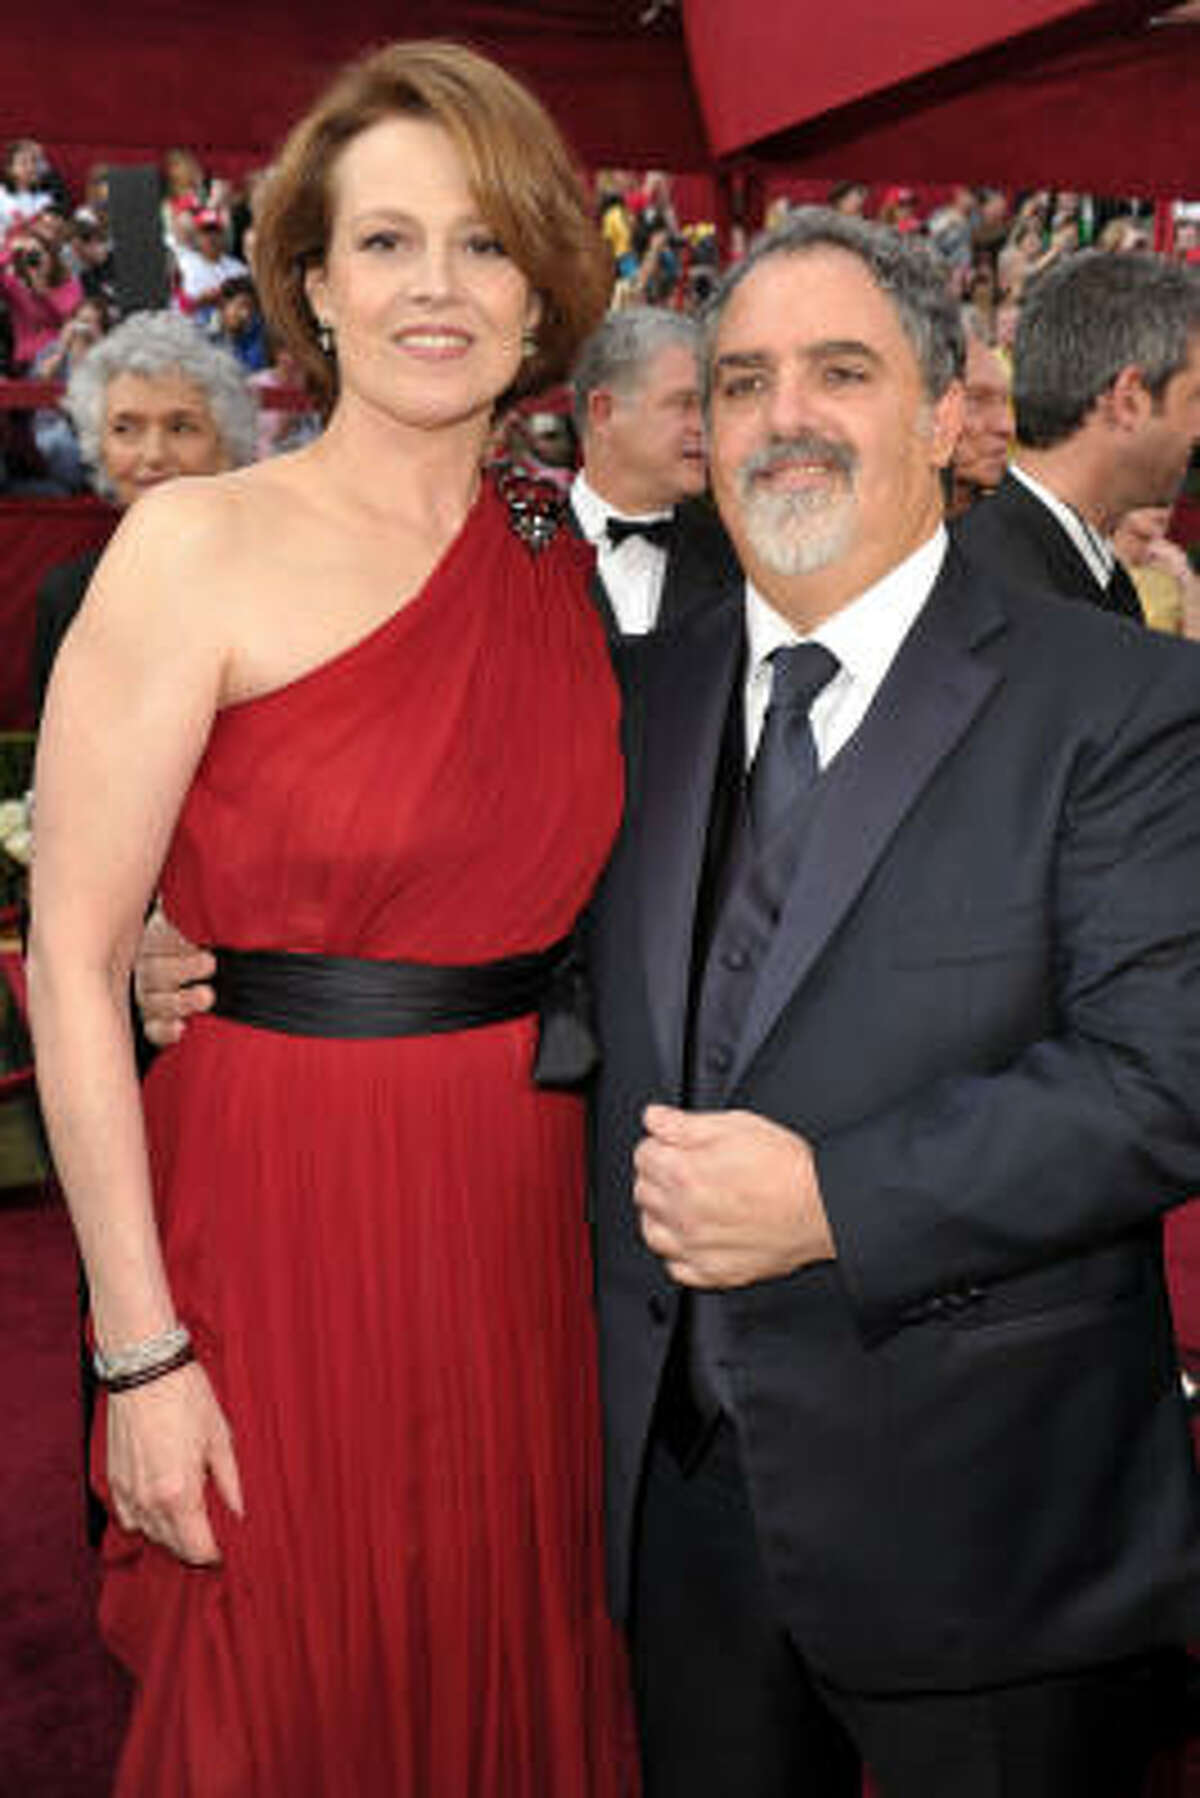 LADY IN RED: Sigourney Weaver's red one-shoulder dress by Lanvin was a show stopper on the red carepet, but we didn't like the black sash so much.